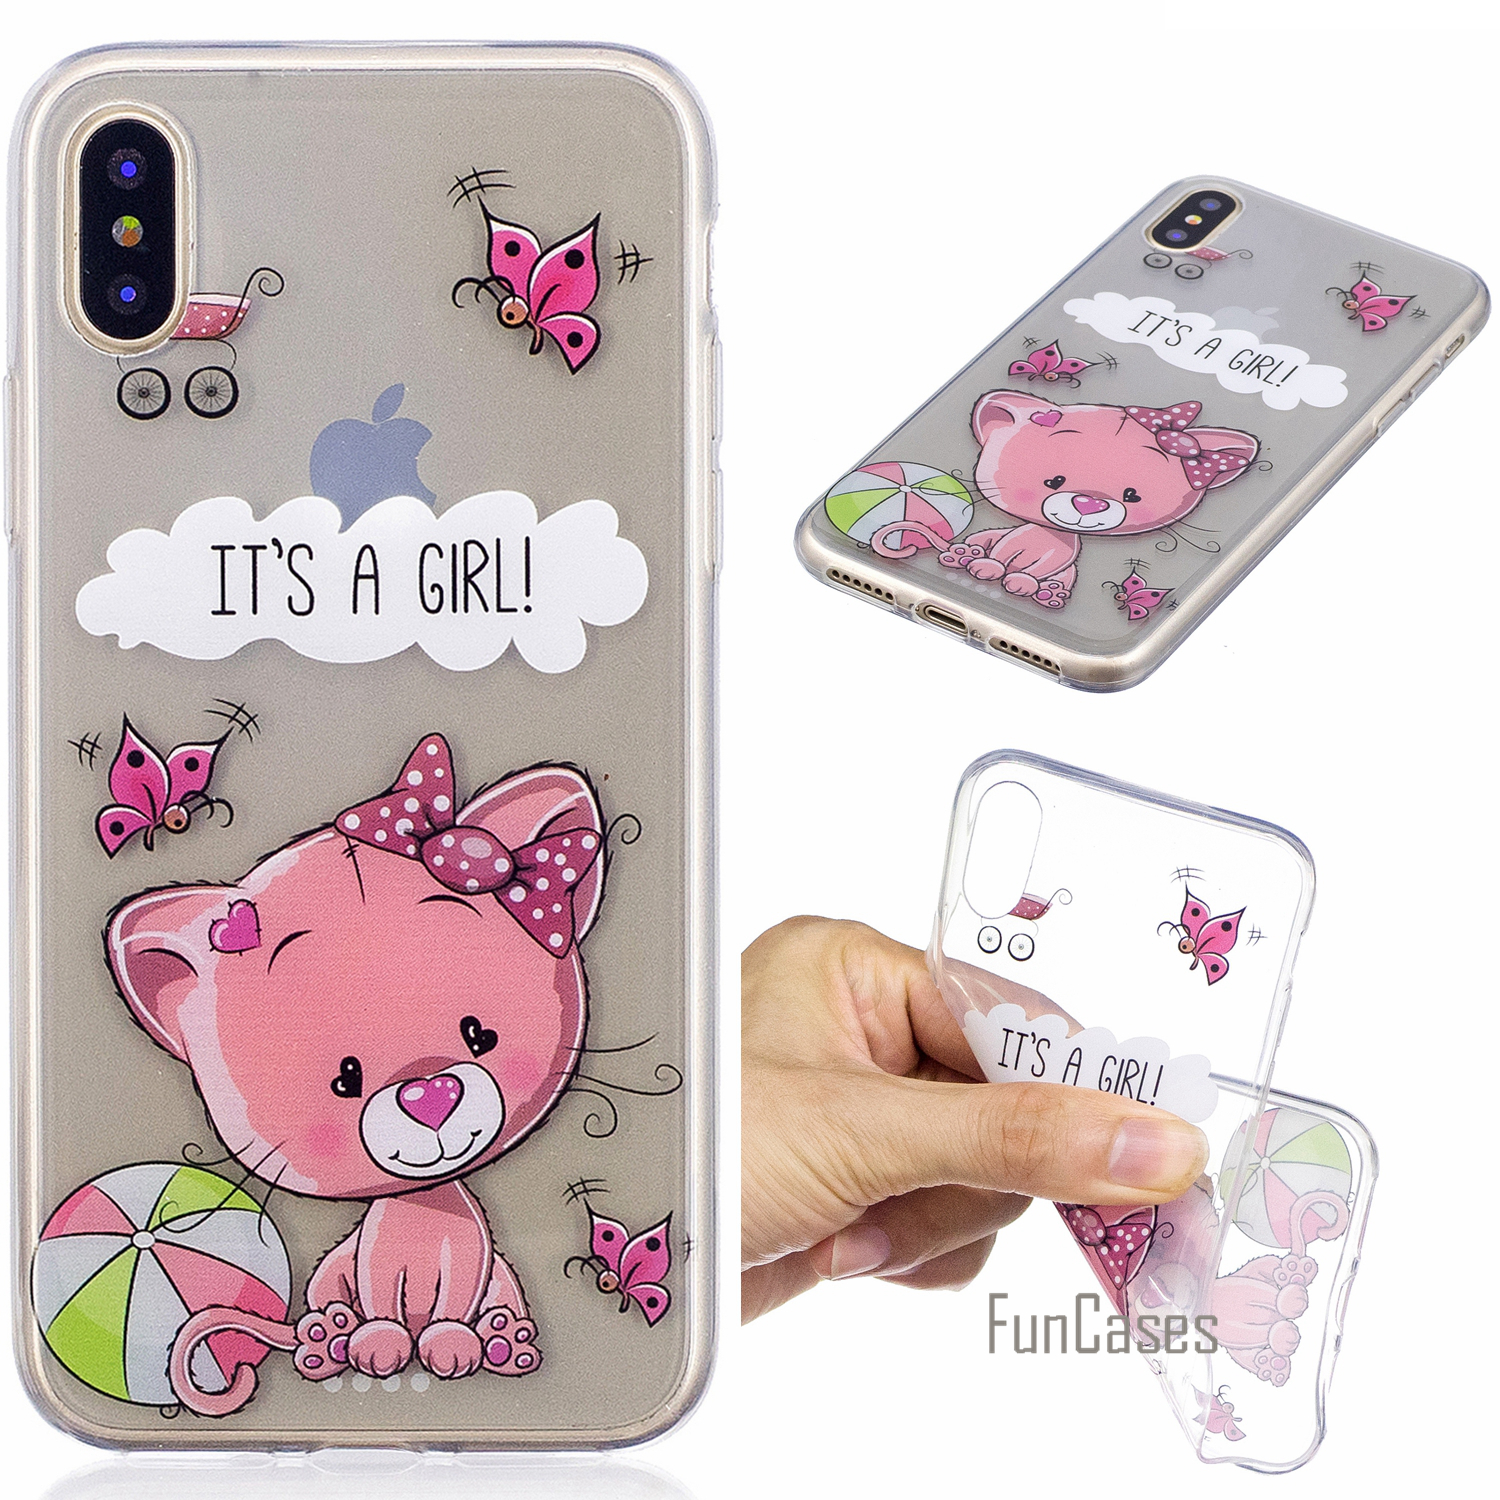 Lovely Cat <font><b>Phone</b></font> <font><b>Case</b></font> for <font><b>Samsung</b></font> Galaxy S8 Plus A3 <font><b>A5</b></font> <font><b>2016</b></font> J3 J5 Prime J7 2017 Soft TPU Cover <font><b>Case</b></font> for iPhone X 8 Plus 7 6 5 image